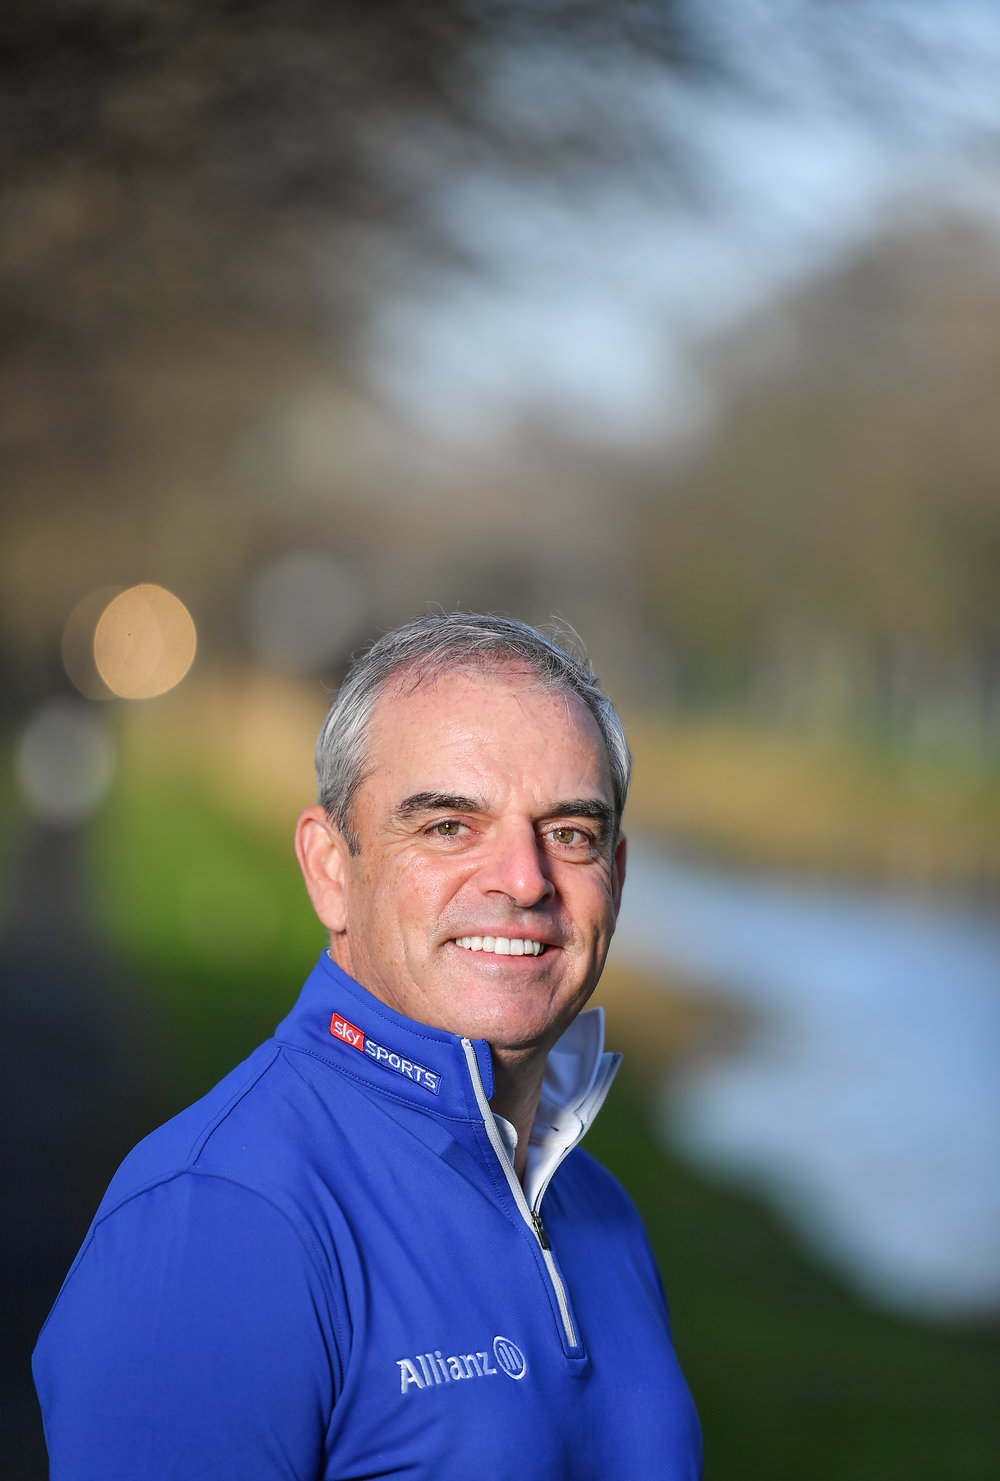 Sky Sports' live coverage of the 2017 Masters in Augusta gets underway on April 5th with expert insight and analysis from former Ryder Cup captain, Paul McGinley, and coach, Butch Harmon.Photo by Brendan Moran/Sportsfile